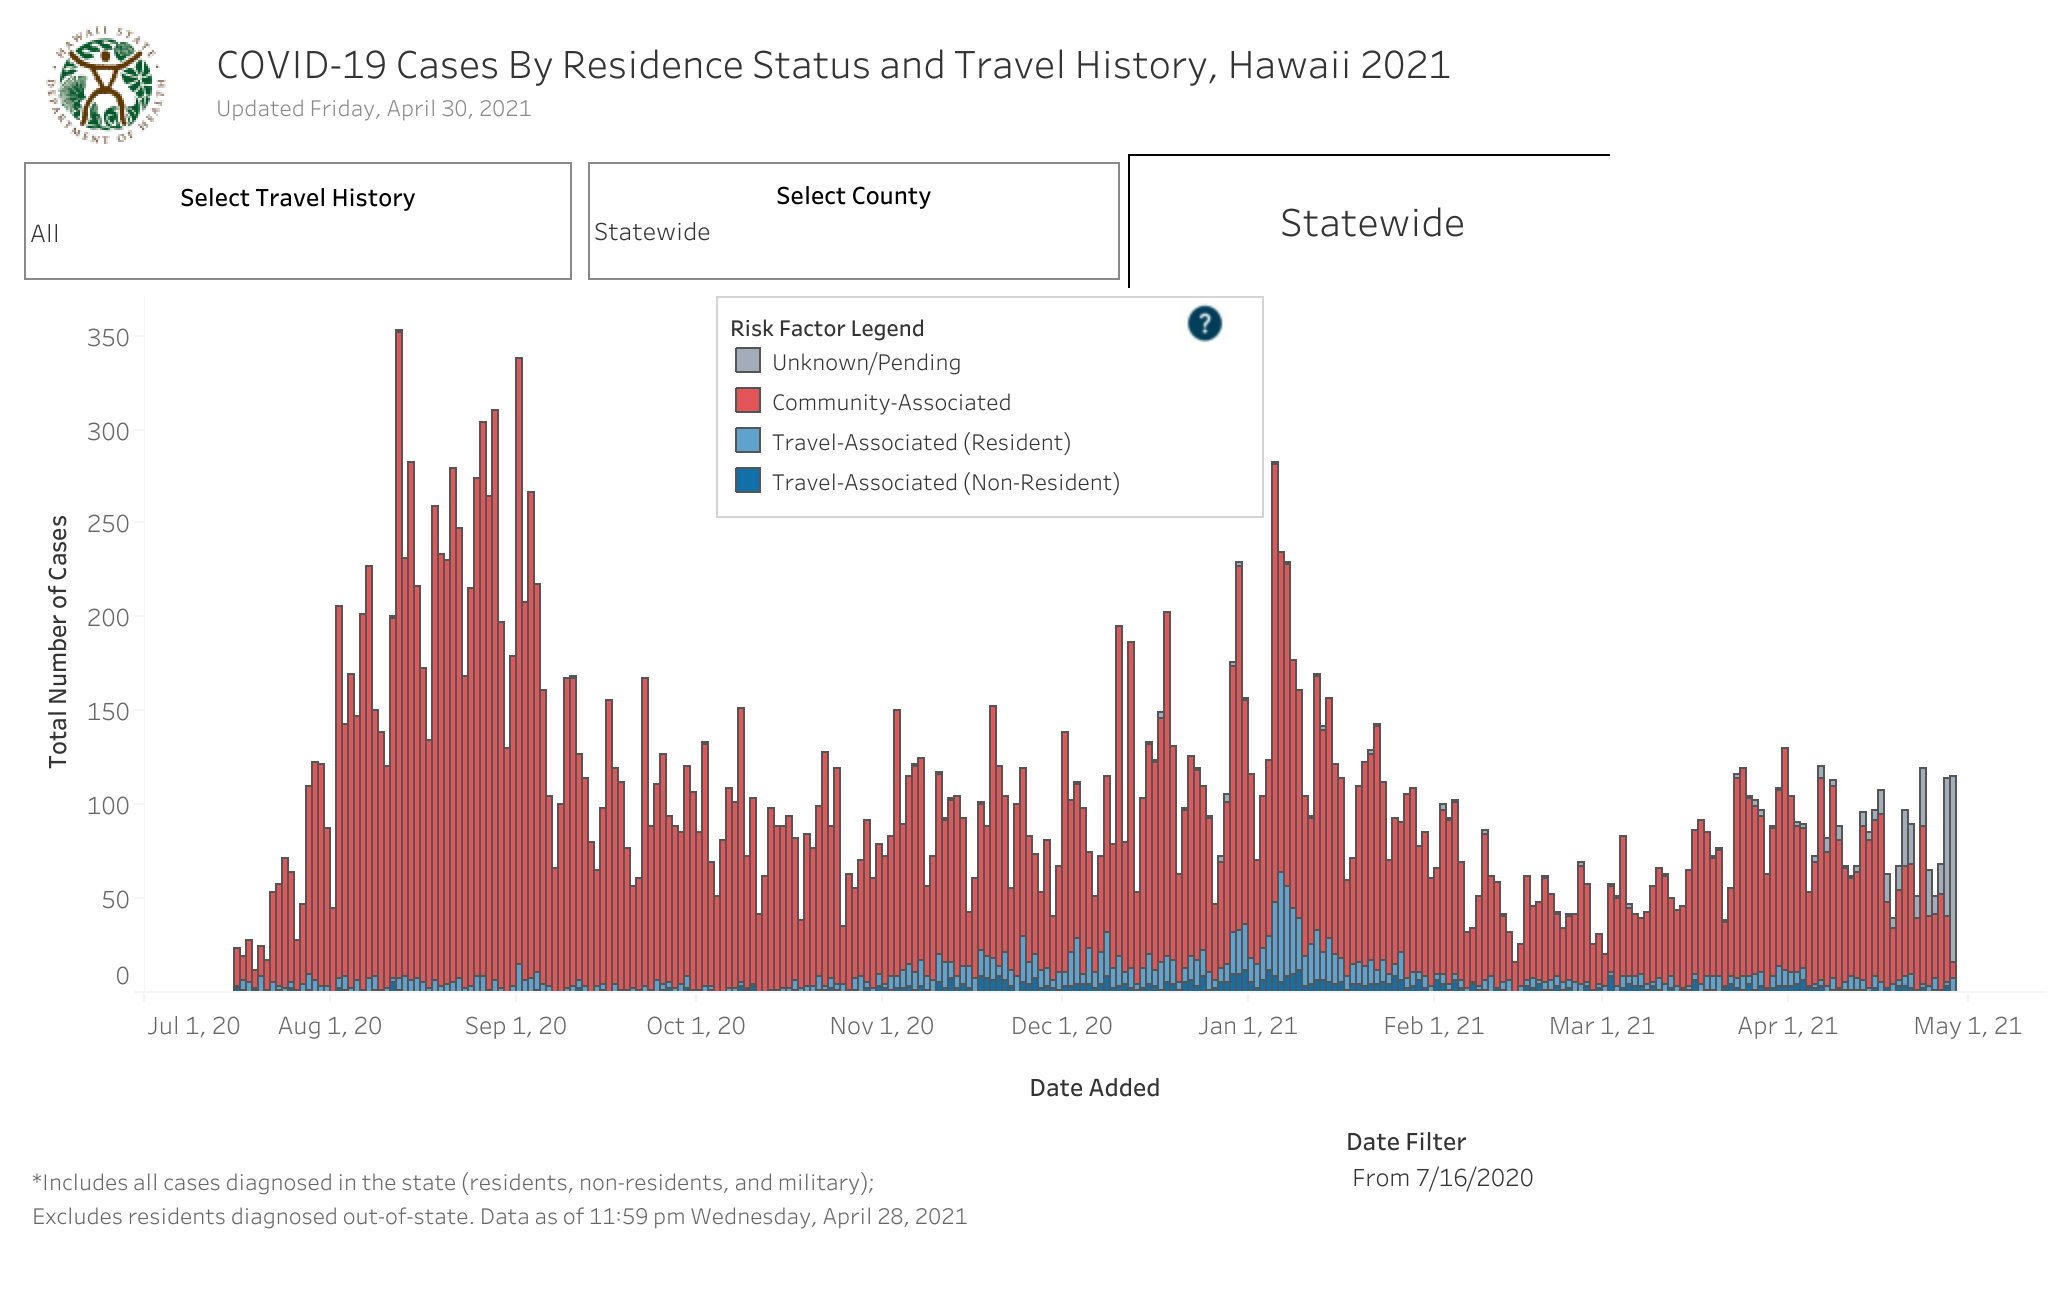 Residence Status and Travel History - April 30 2021